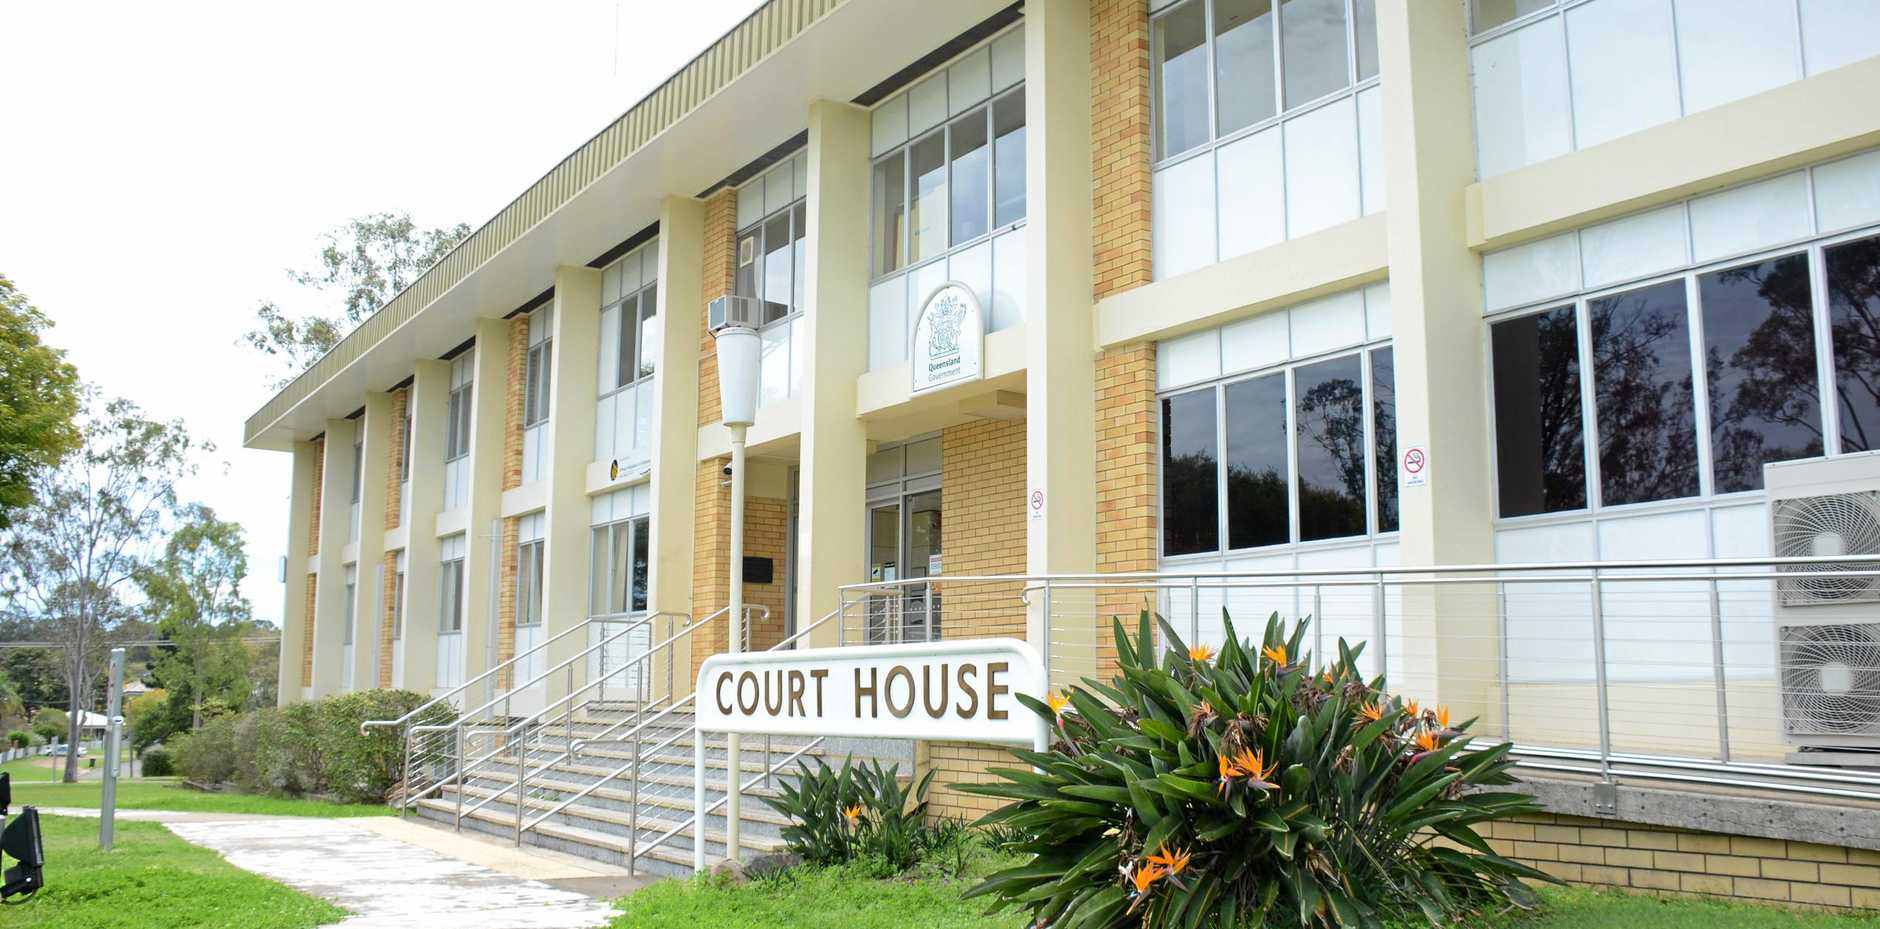 Magistrate Pink told him she did not want to see him in court again, during the Murgon Magistrates Court on October 16.